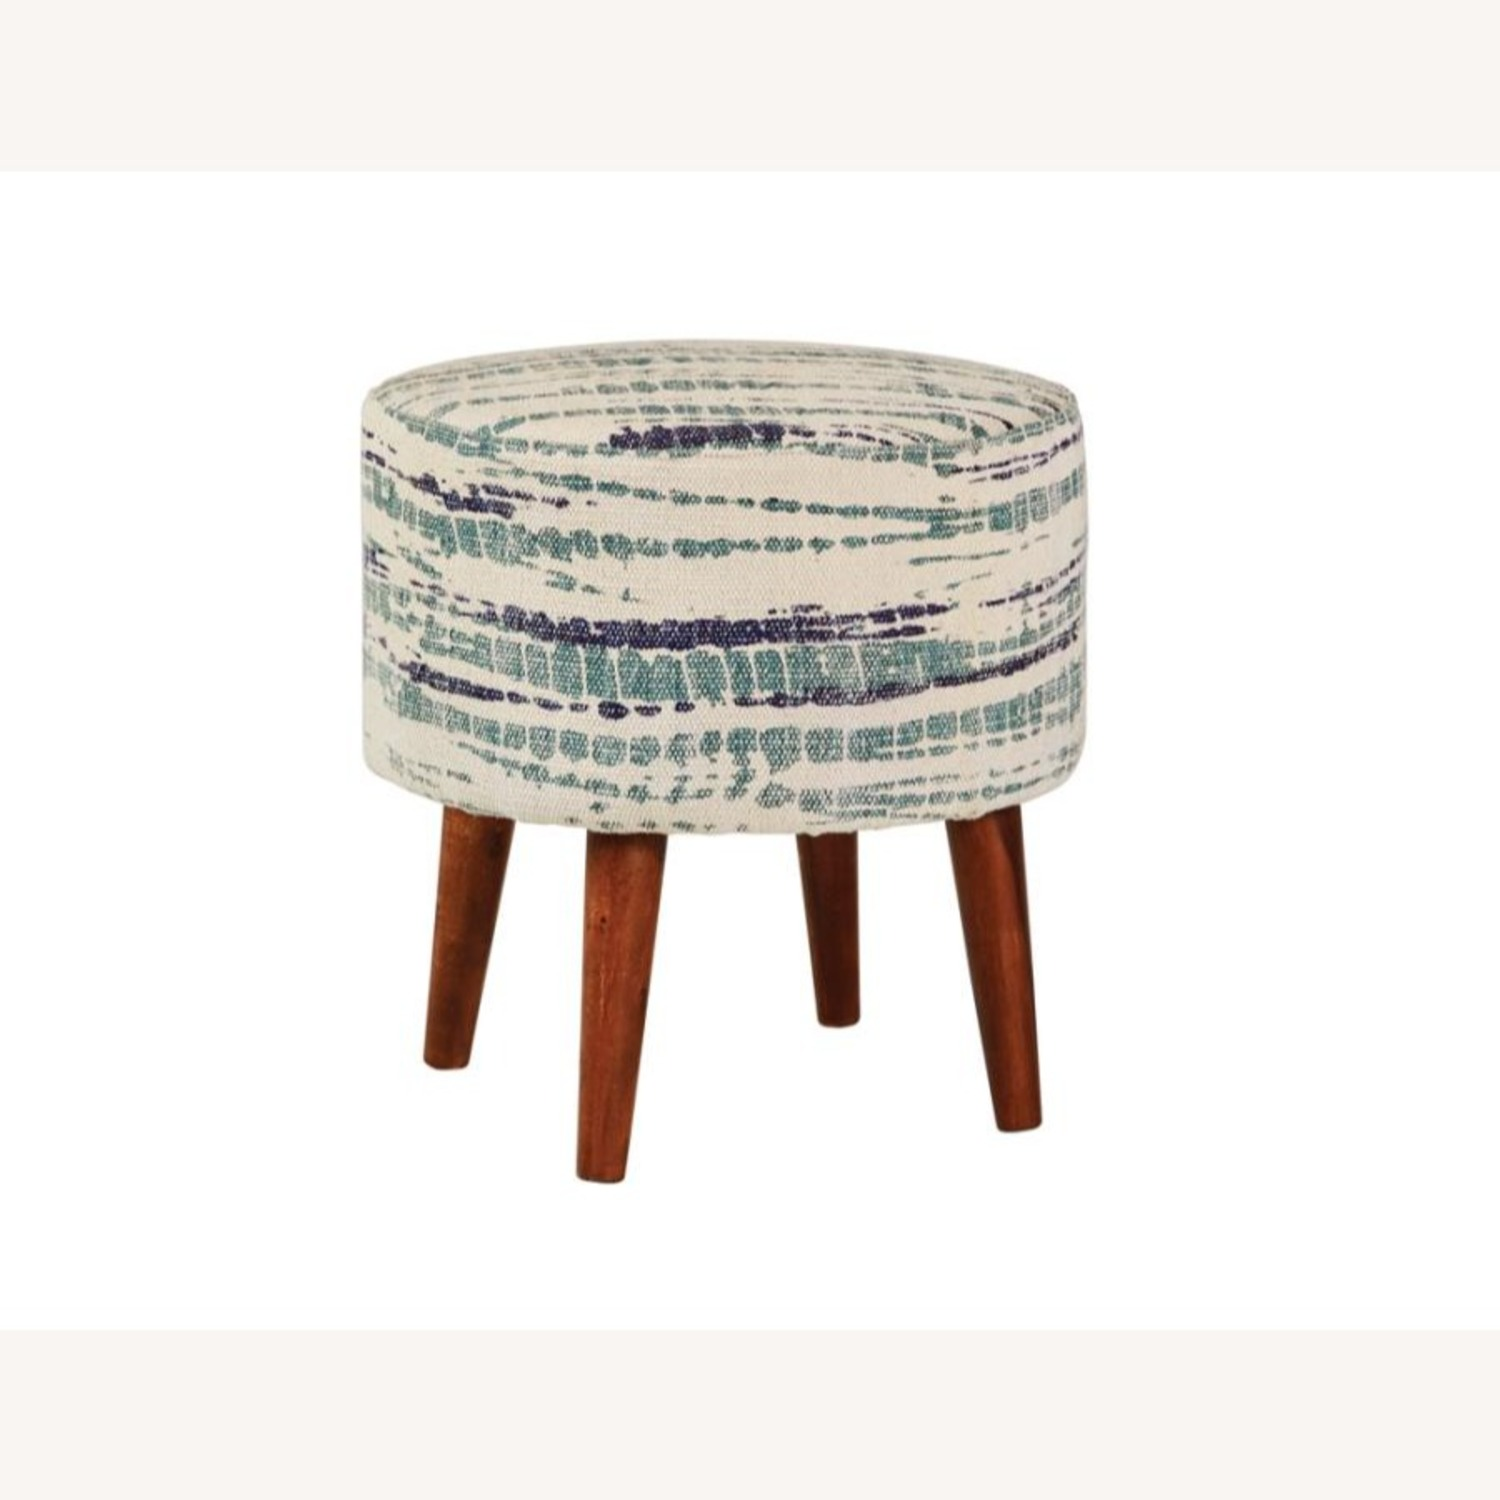 Accent Stool In Blue &White Patterned Woven Cotton - image-0